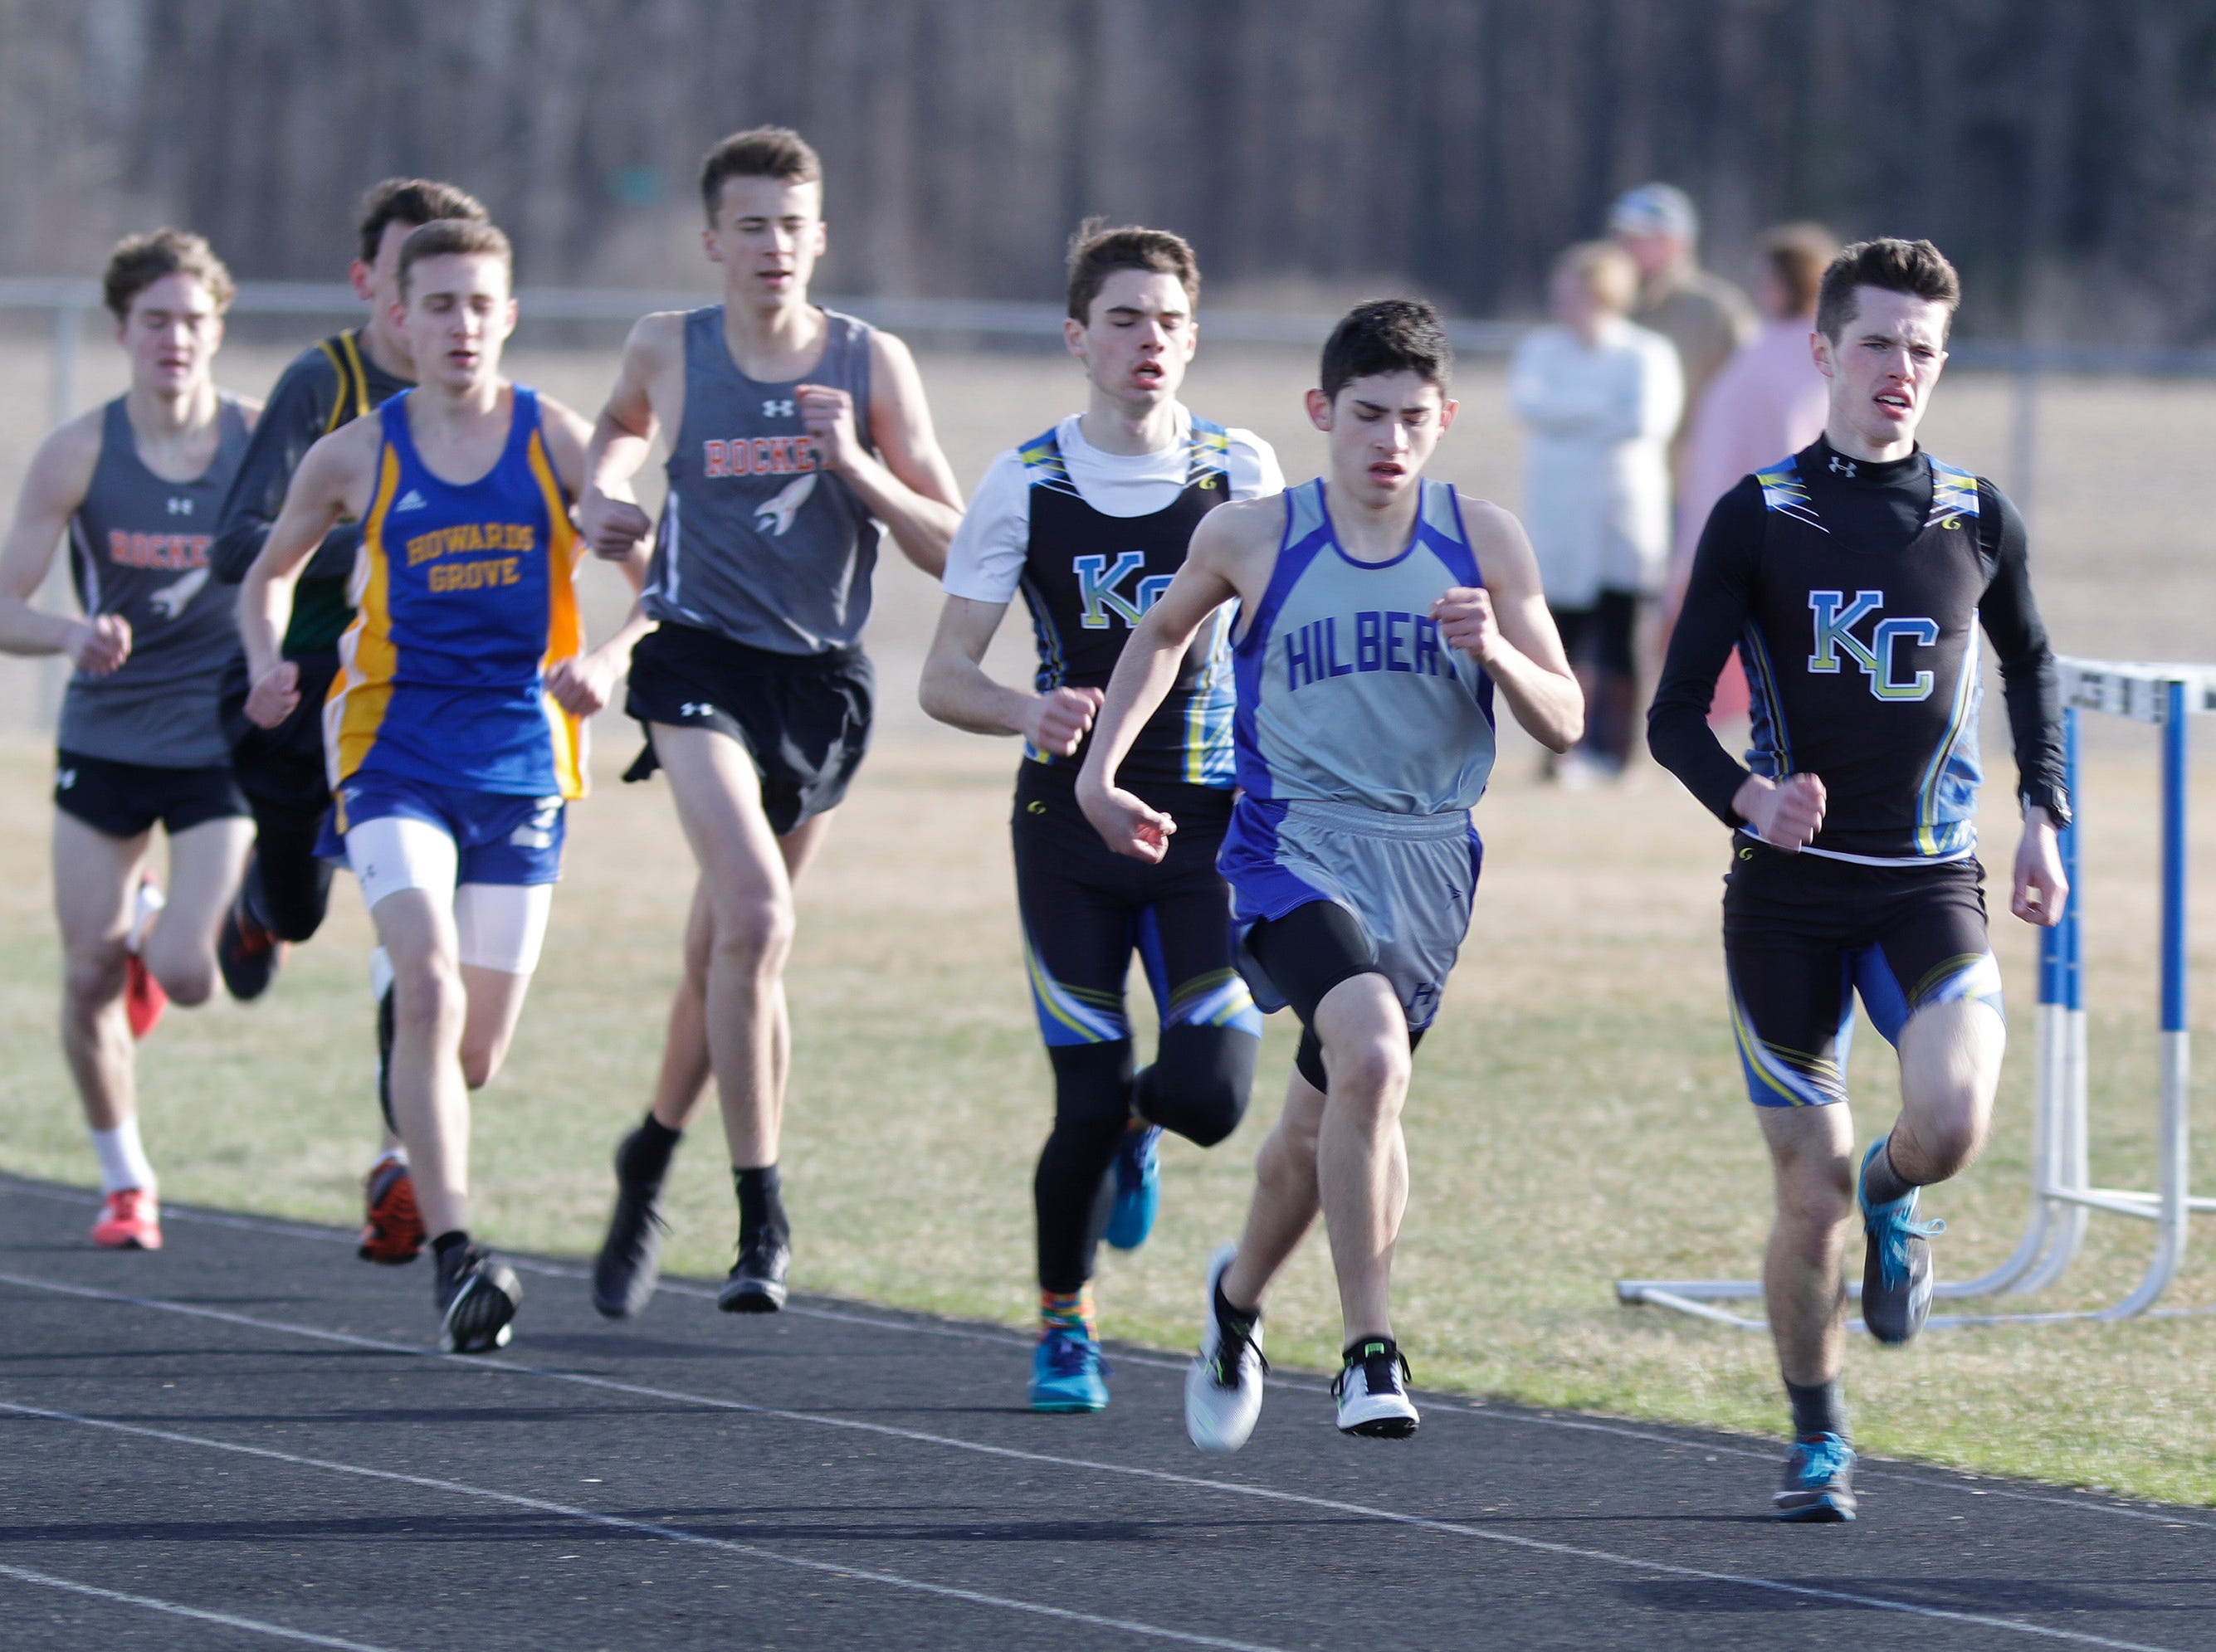 The pack runs the 1600 at the Howards Grove track meet, Tuesday, April 9, 2019, in Howards, Wis.